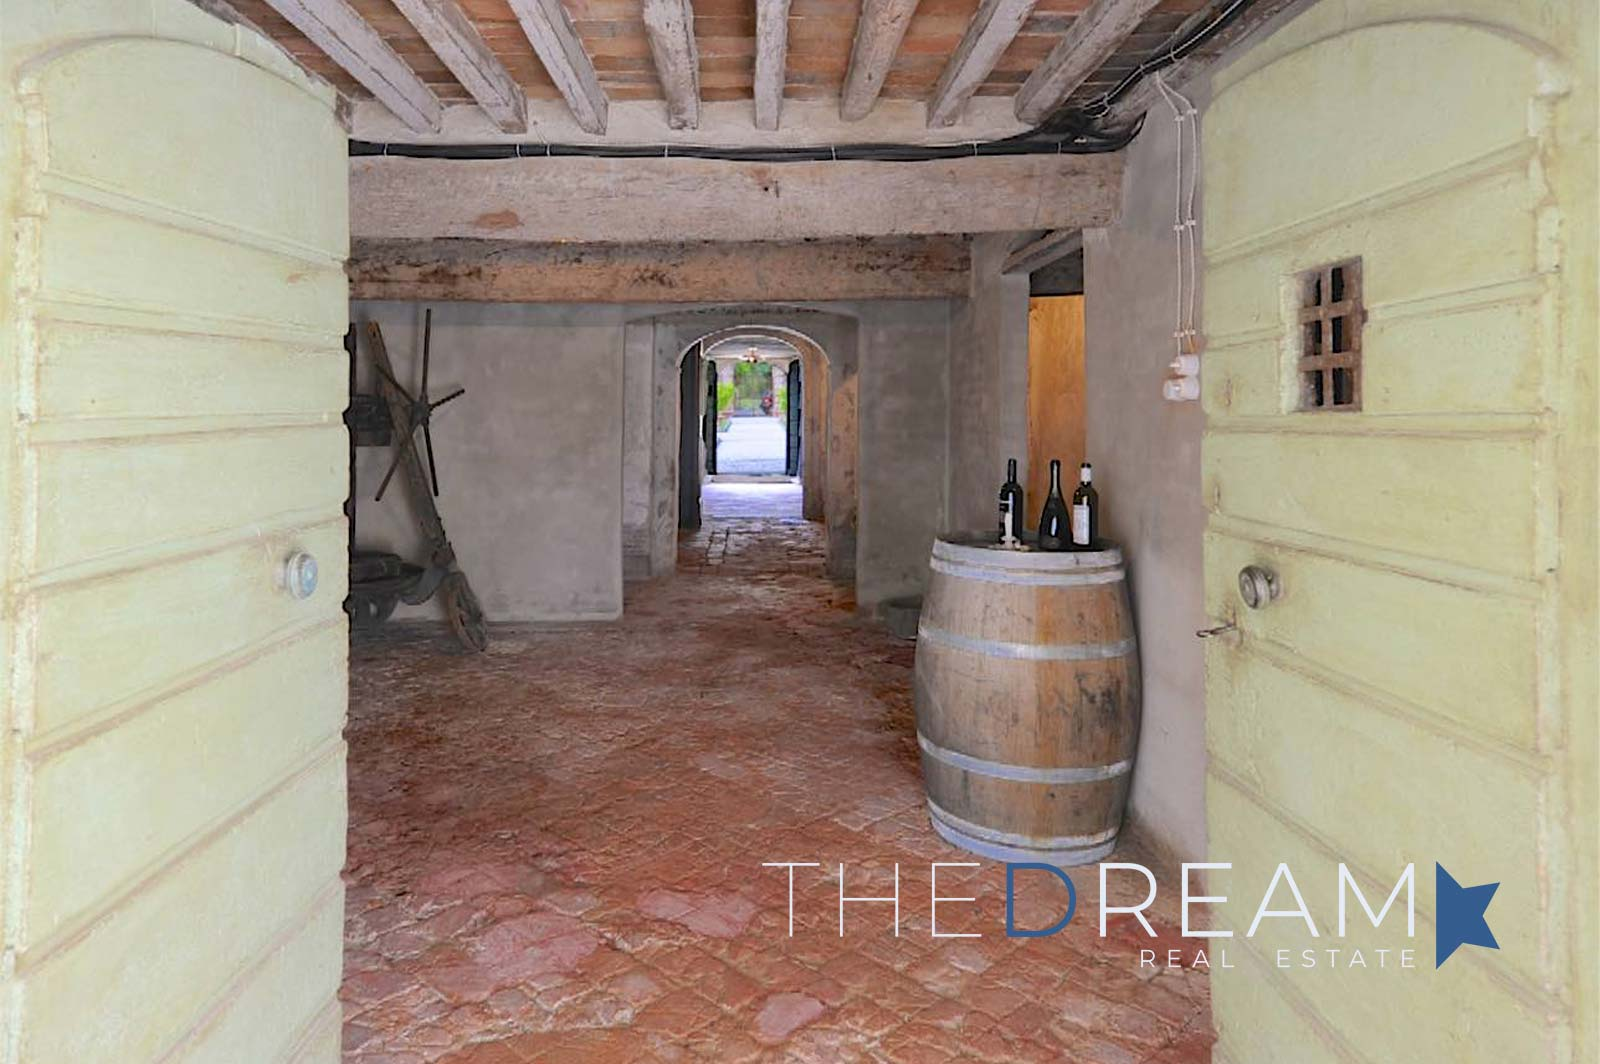 Villa for rent in Lucca - Villa in affitto a Lucca_ingresso1